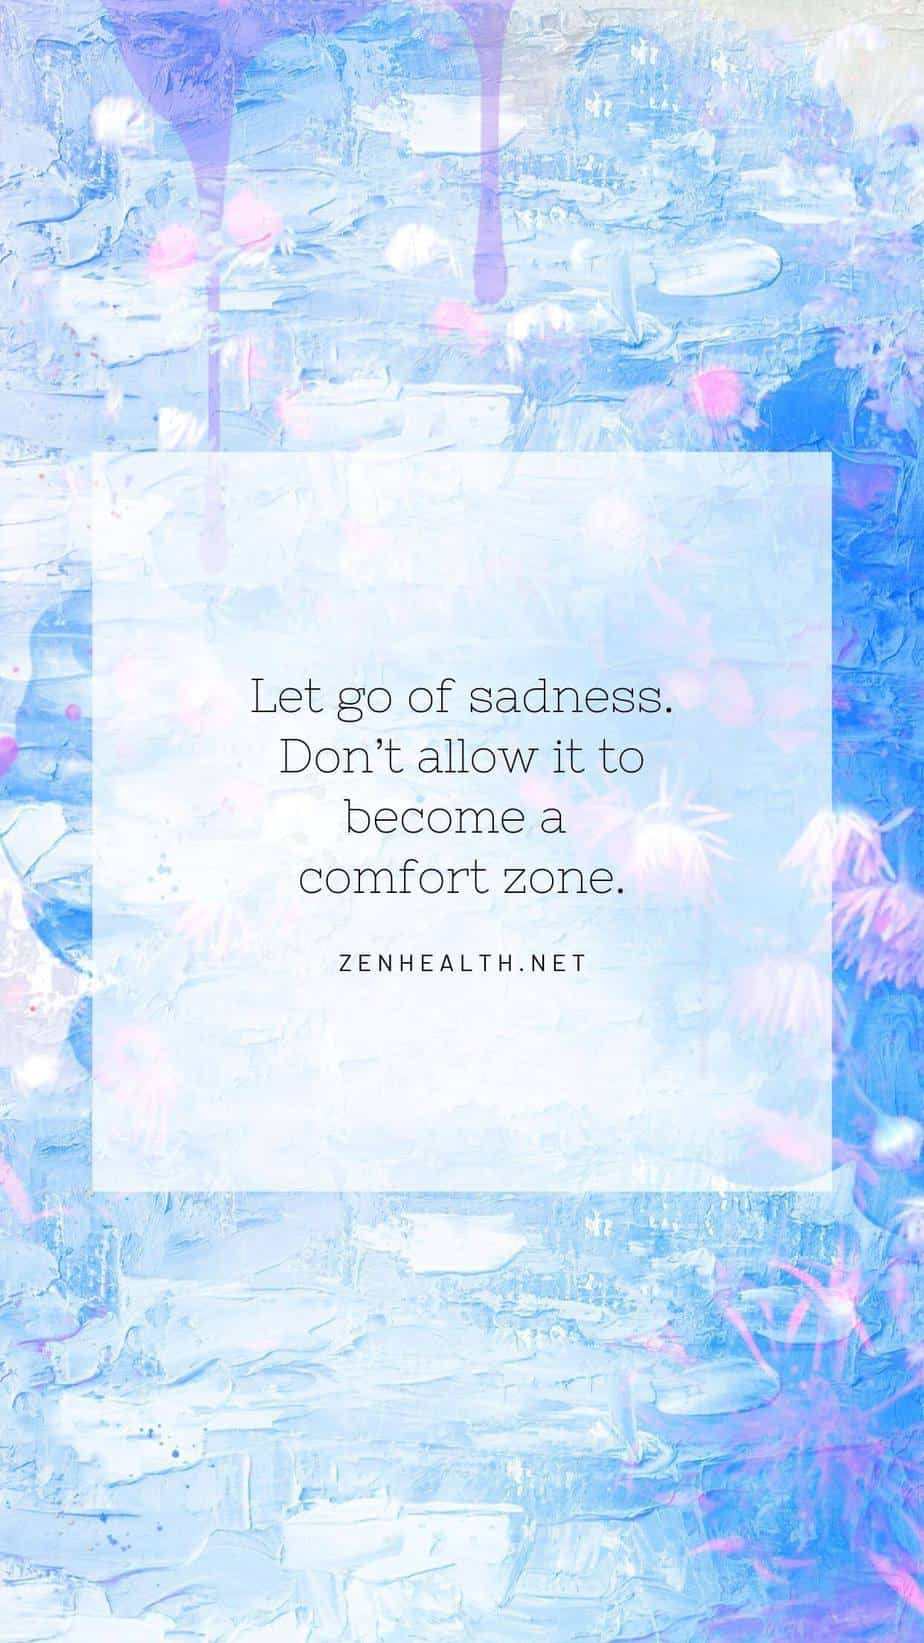 Let go of sadness. Don't allow it to become a comfort zone.